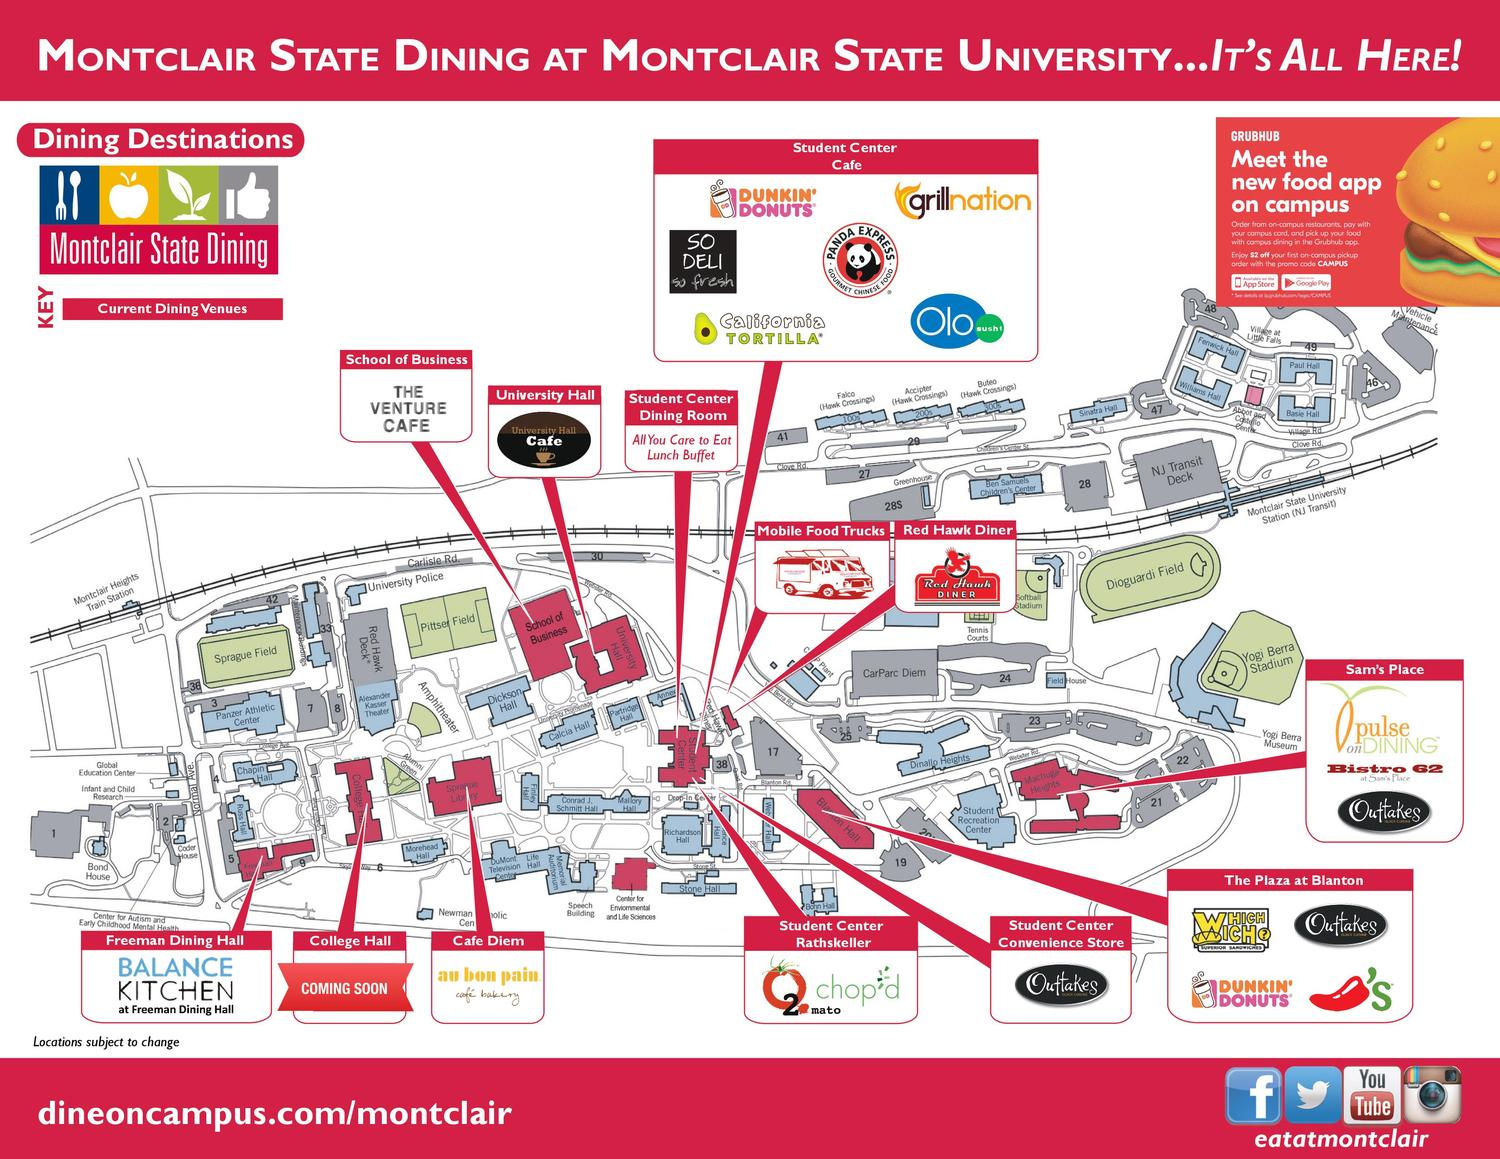 Dine On Campus at Montclair State University || Where To Eat? Montclair State University Campus Map on plymouth state college campus map, rowan university campus map, salisbury state university campus map, loyola university of maryland campus map, bastyr university campus map, fairfield university campus map, tennessee technological university campus map, metropolitan state college campus map, georgia college & state university campus map, washington state university vancouver campus map, university of wisconsin-madison campus map, city university of new york campus map, mount allison university campus map, medical university of south carolina campus map, nashville state community college campus map, new jersey college and university map, mississippi university for women campus map, eastern new mexico university campus map, southern arkansas university campus map, mountain state university campus map,